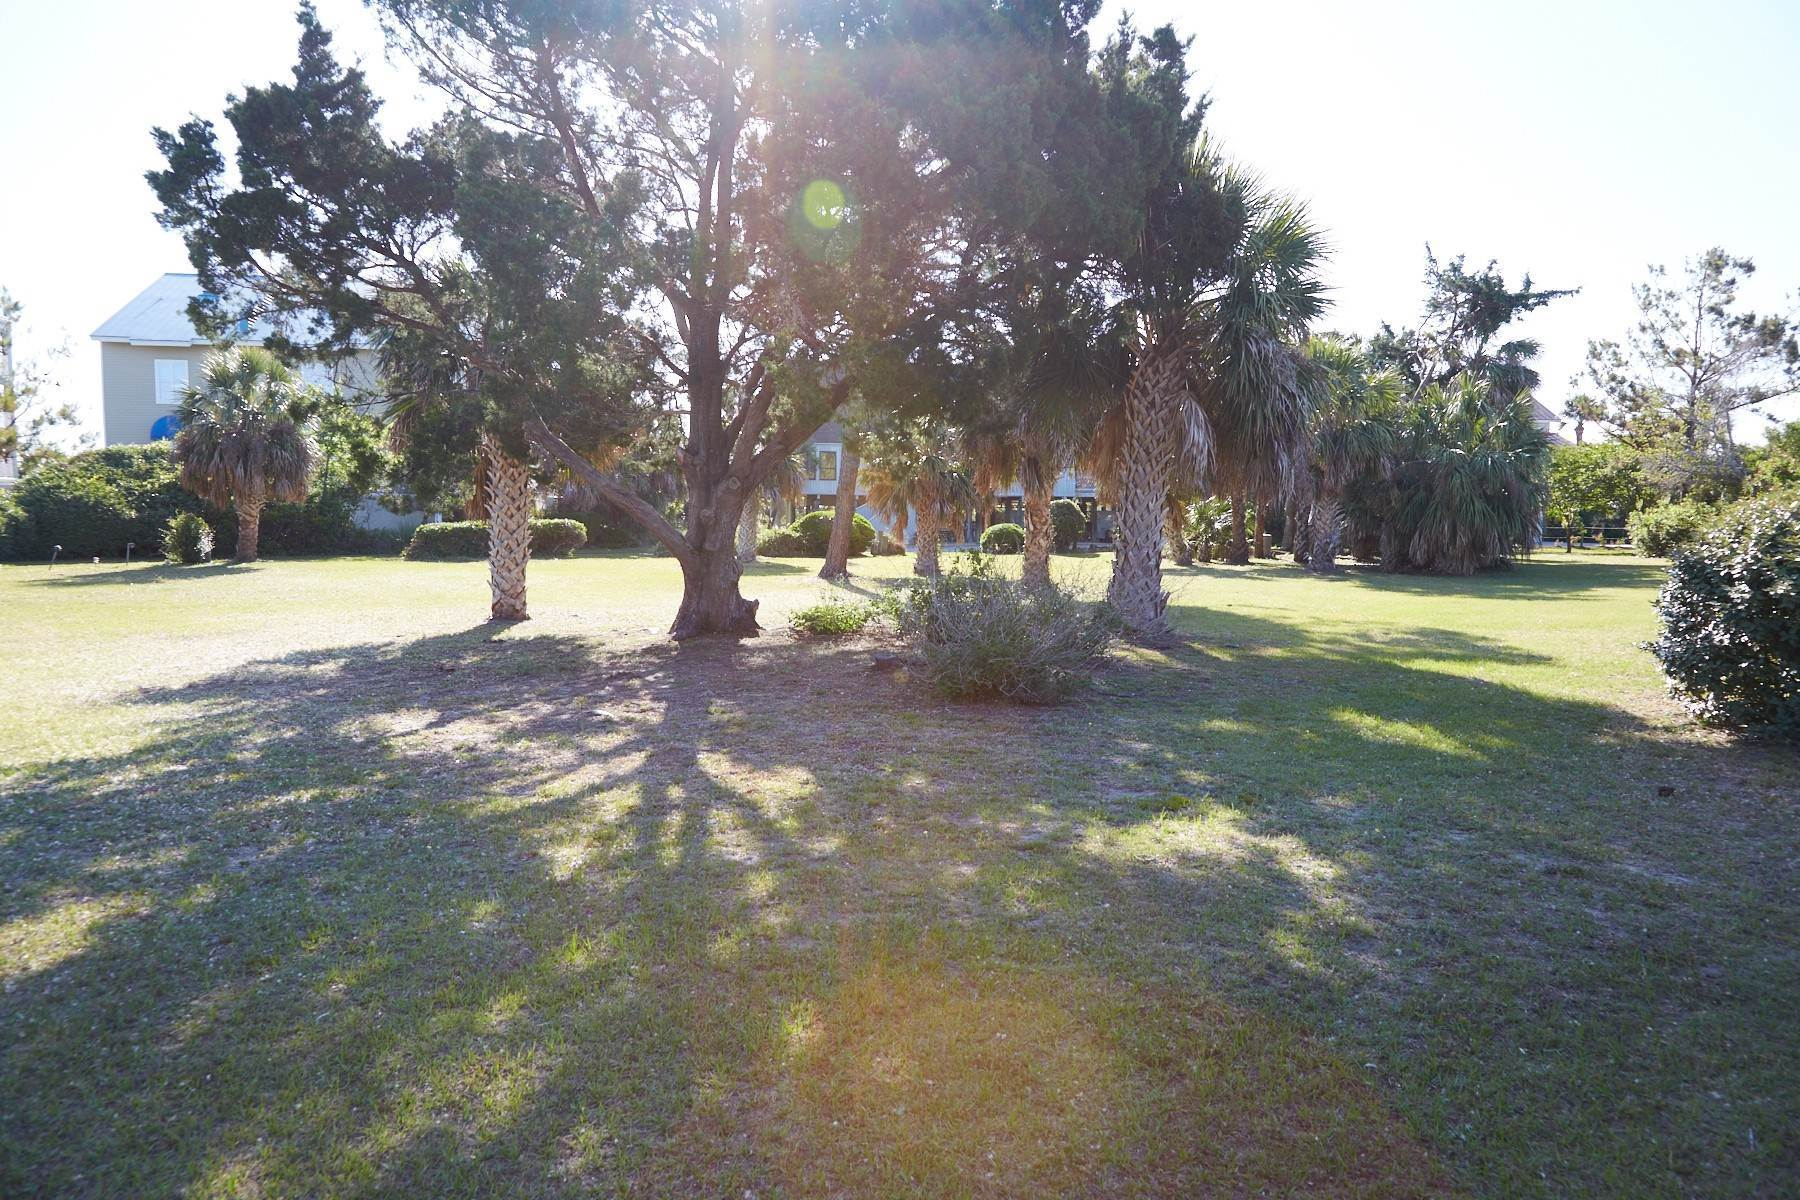 Land for Sale at Ocean View Court Lot 9 Ocean View Court, Lot 9 Tybee Island, Georgia 31328 United States